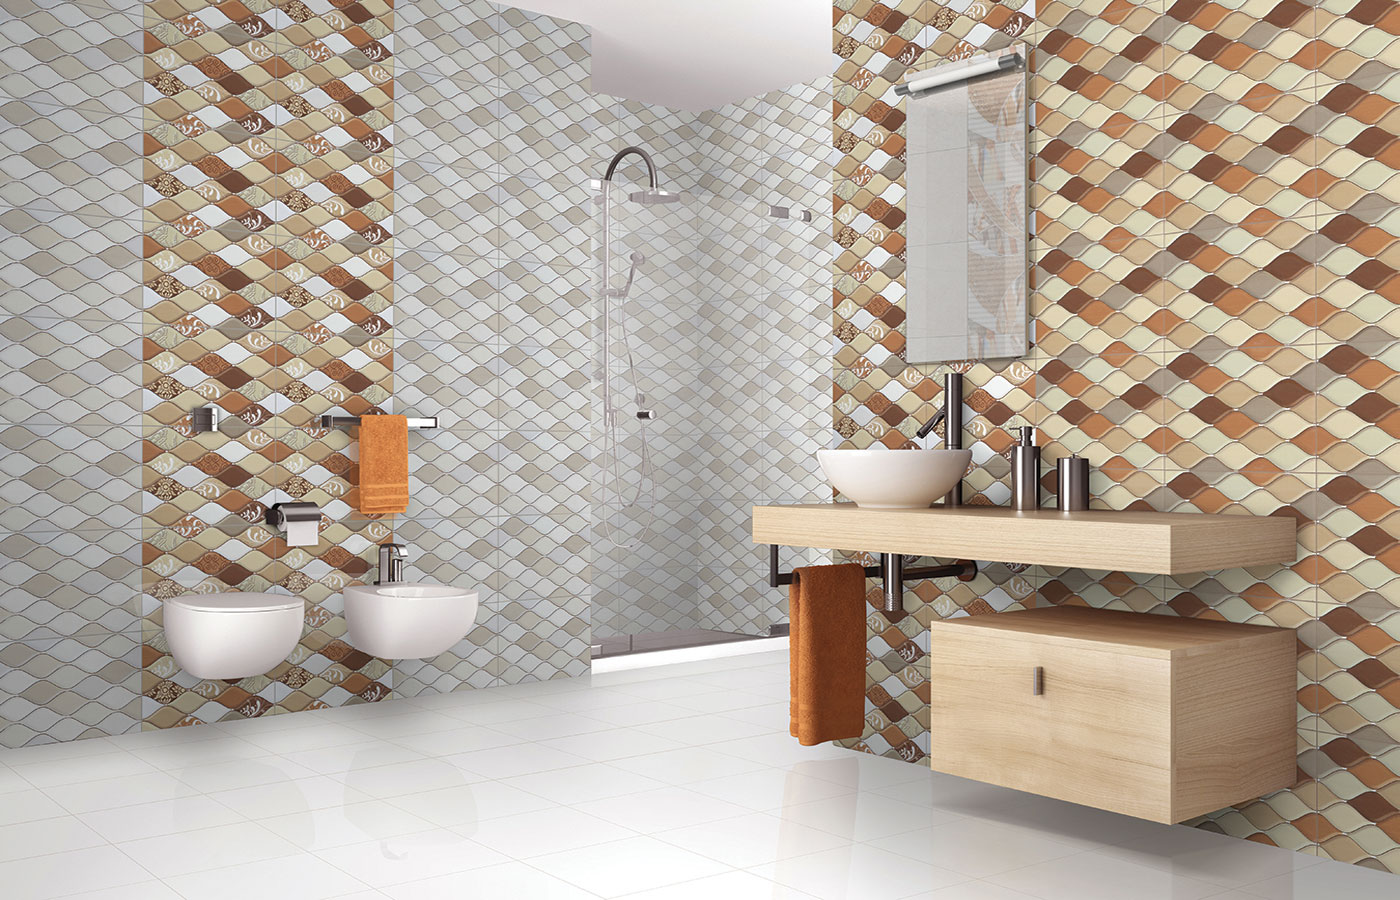 surprising kitchen wall tile designs | 30 Pictures of bathroom wall tile 12x12 2019